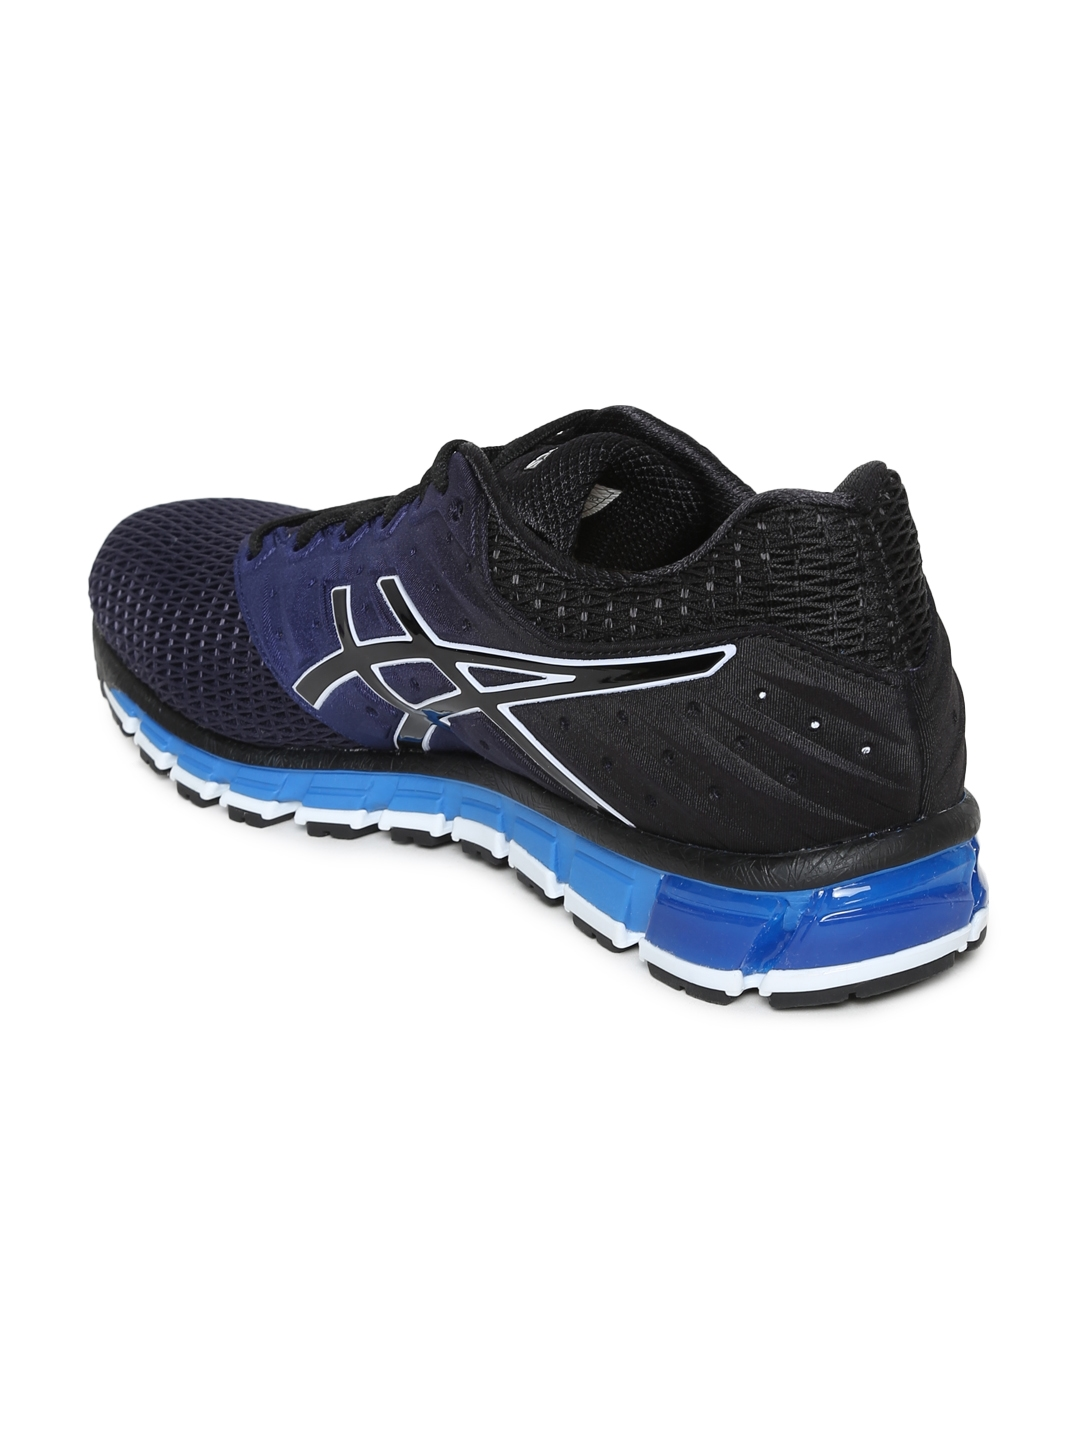 c101f7c5fc3d Buy ASICS Men Navy Blue GEL QUANTUM 180 2 Running Shoes - Sports ...